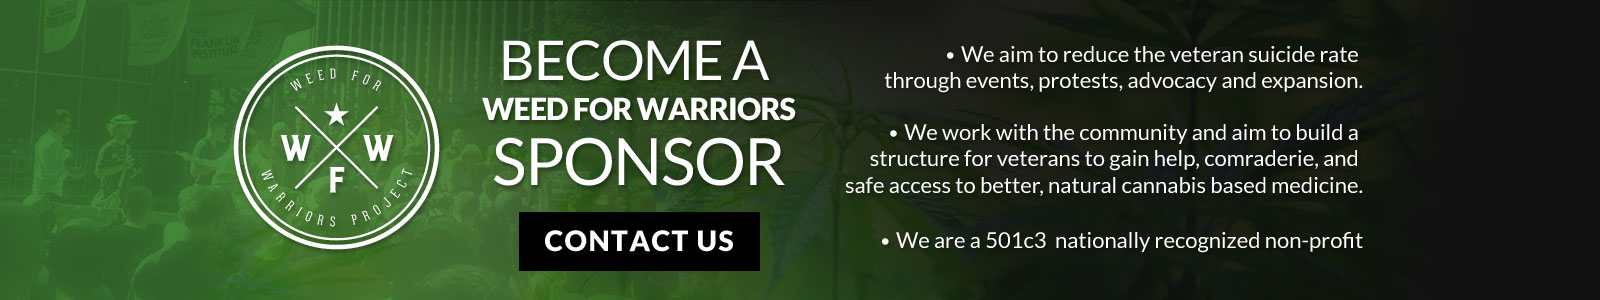 Weed for Warriors Project - Donate